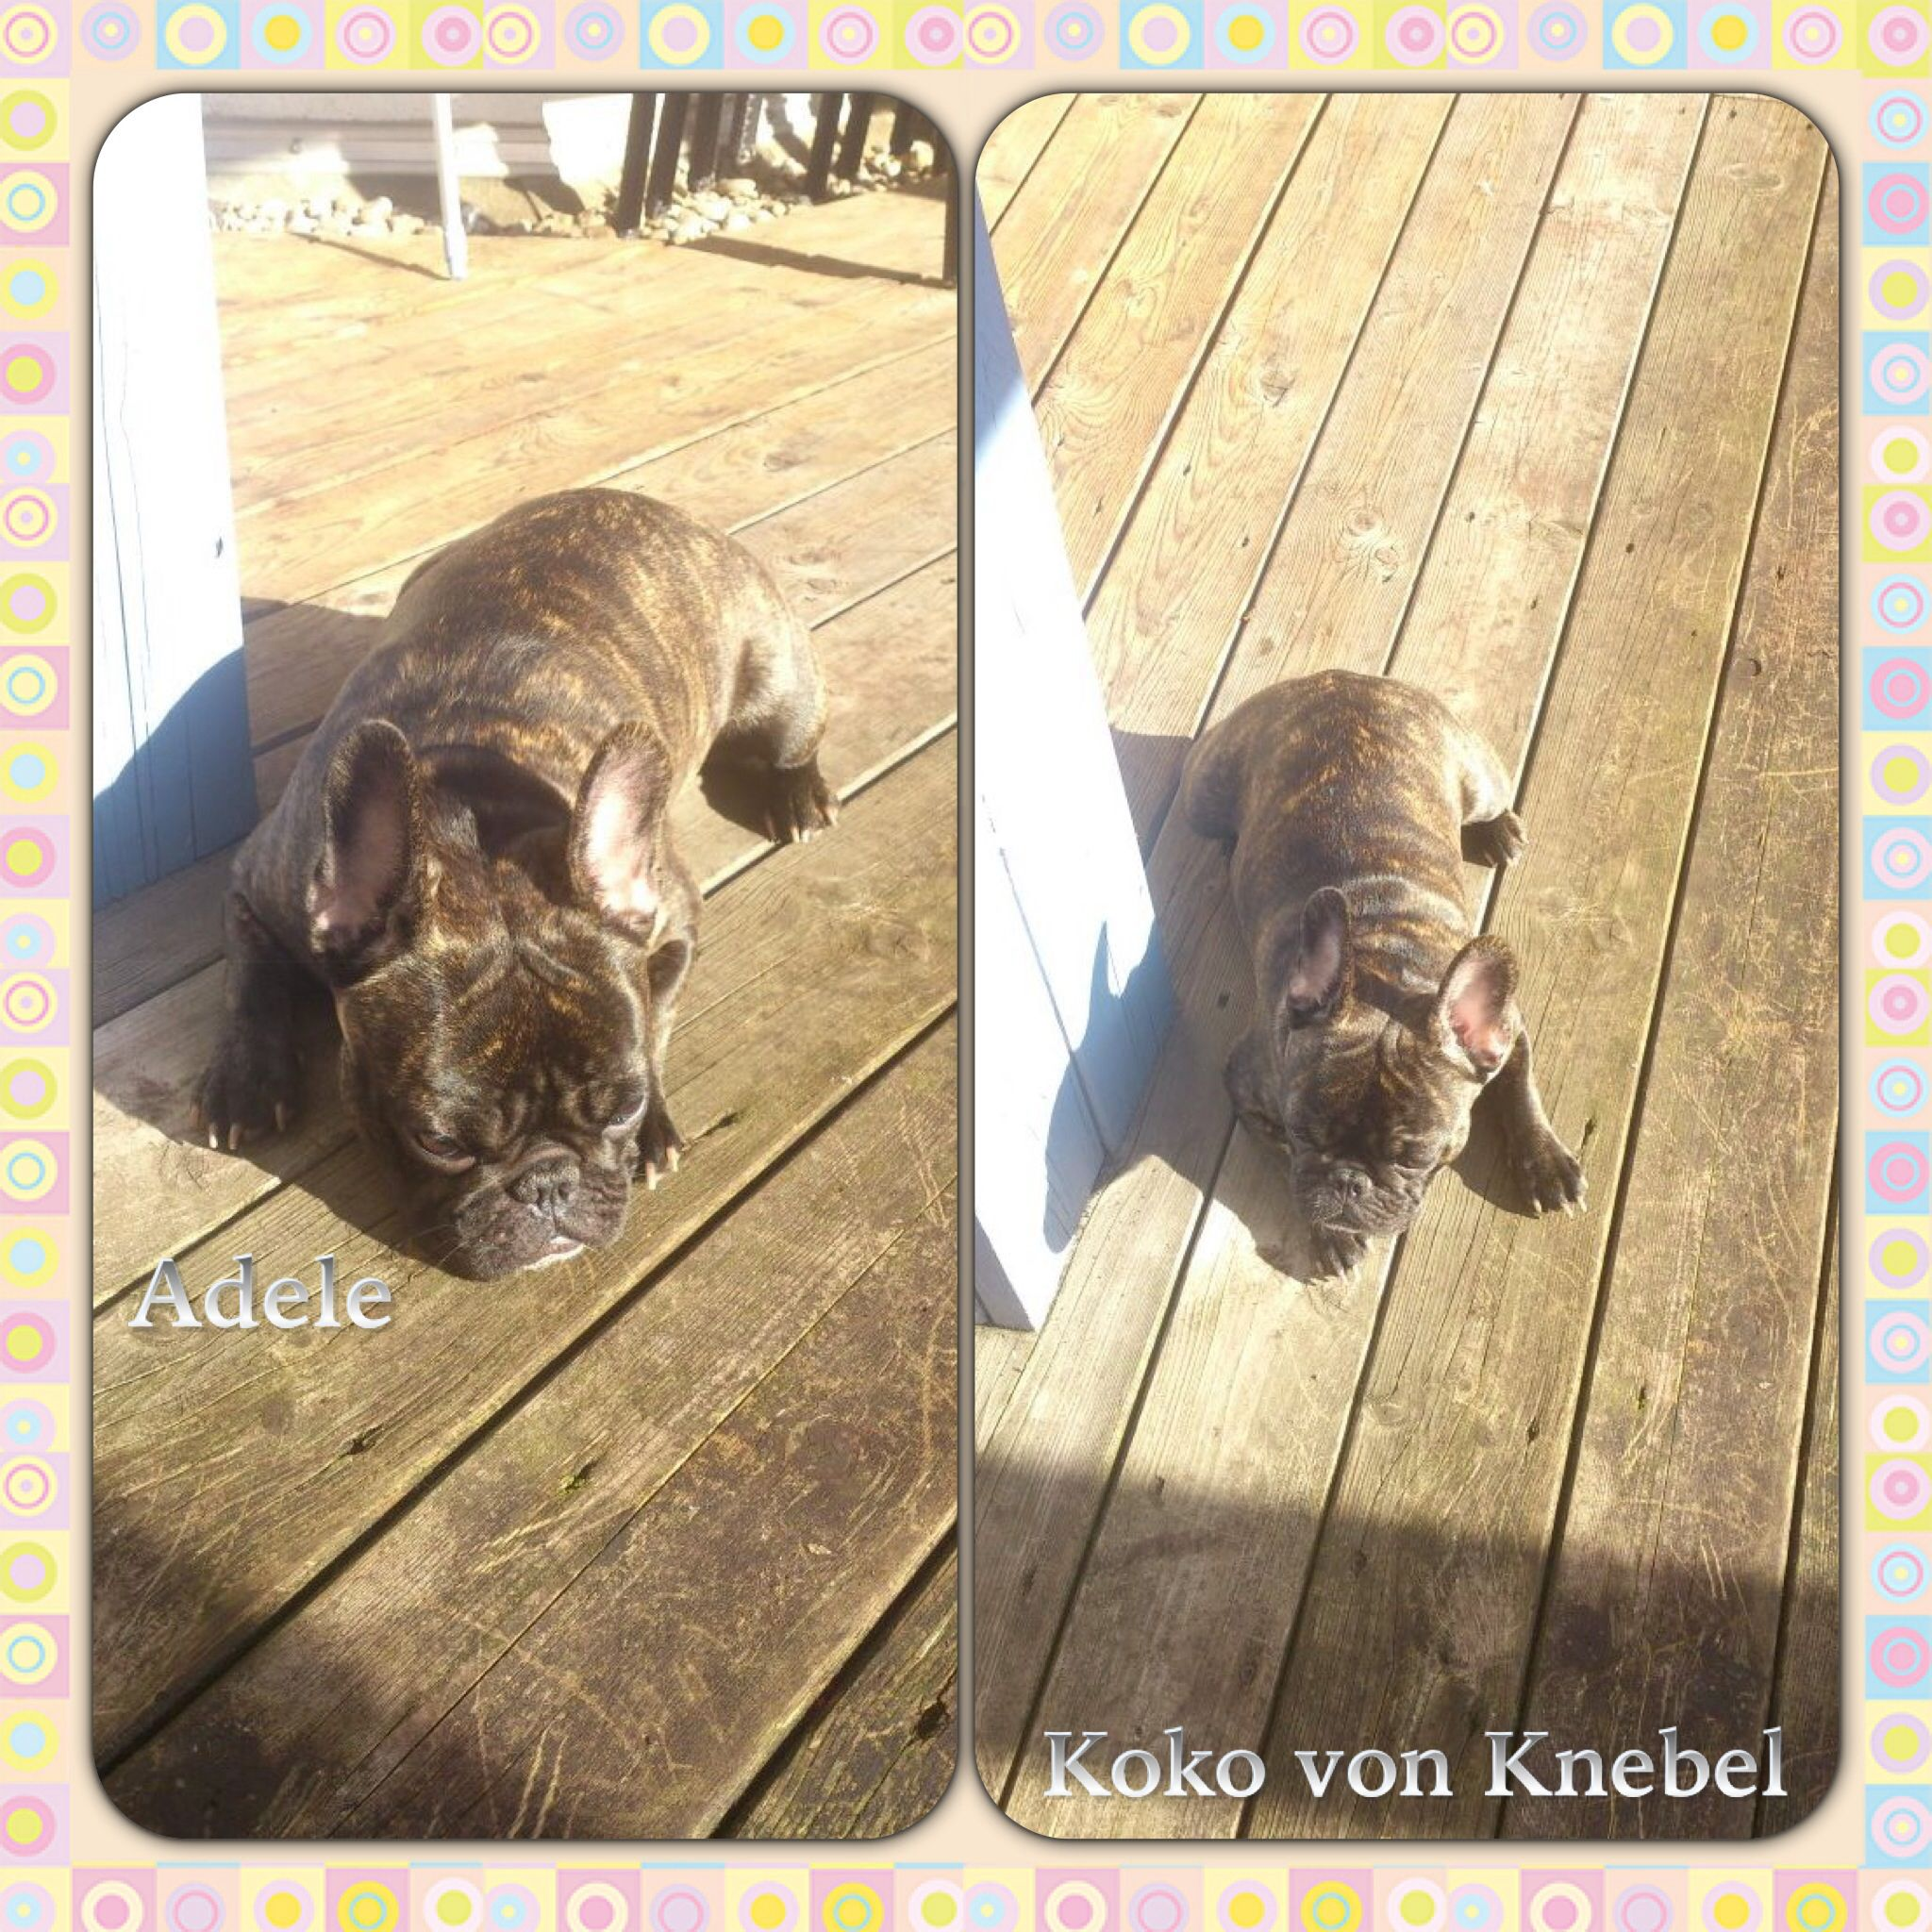 Adele She Is The 4 Pawed Friend Of Tanja Who Sends Us A Lot Of Great Pictures Through Fb Thank You Very Much Tanja